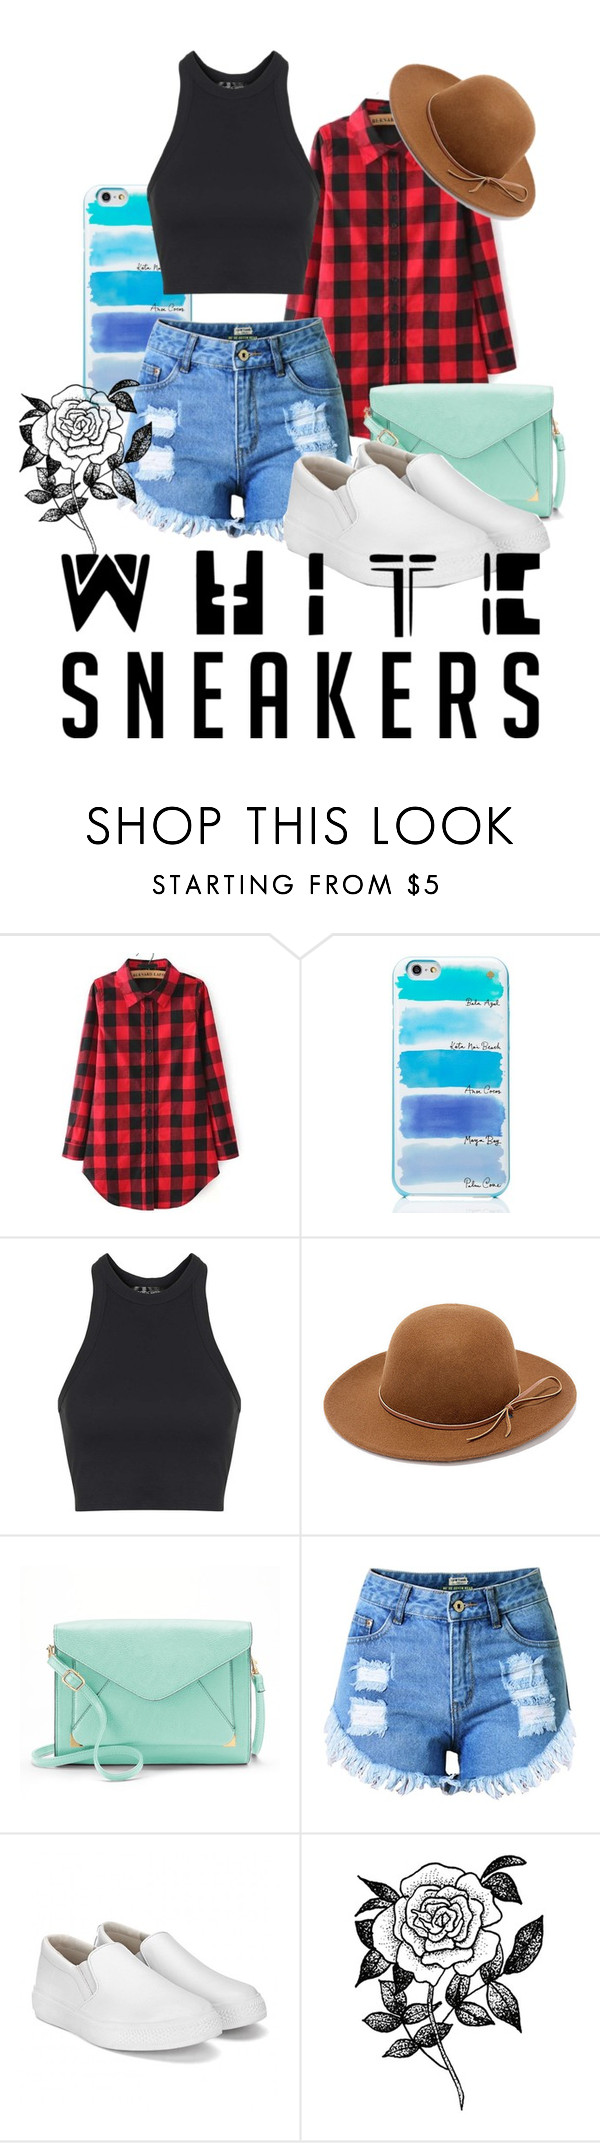 """""""White Sneakers"""" by skyequake on Polyvore featuring Kate Spade, Topshop, RHYTHM, Apt. 9 and Forever 21"""